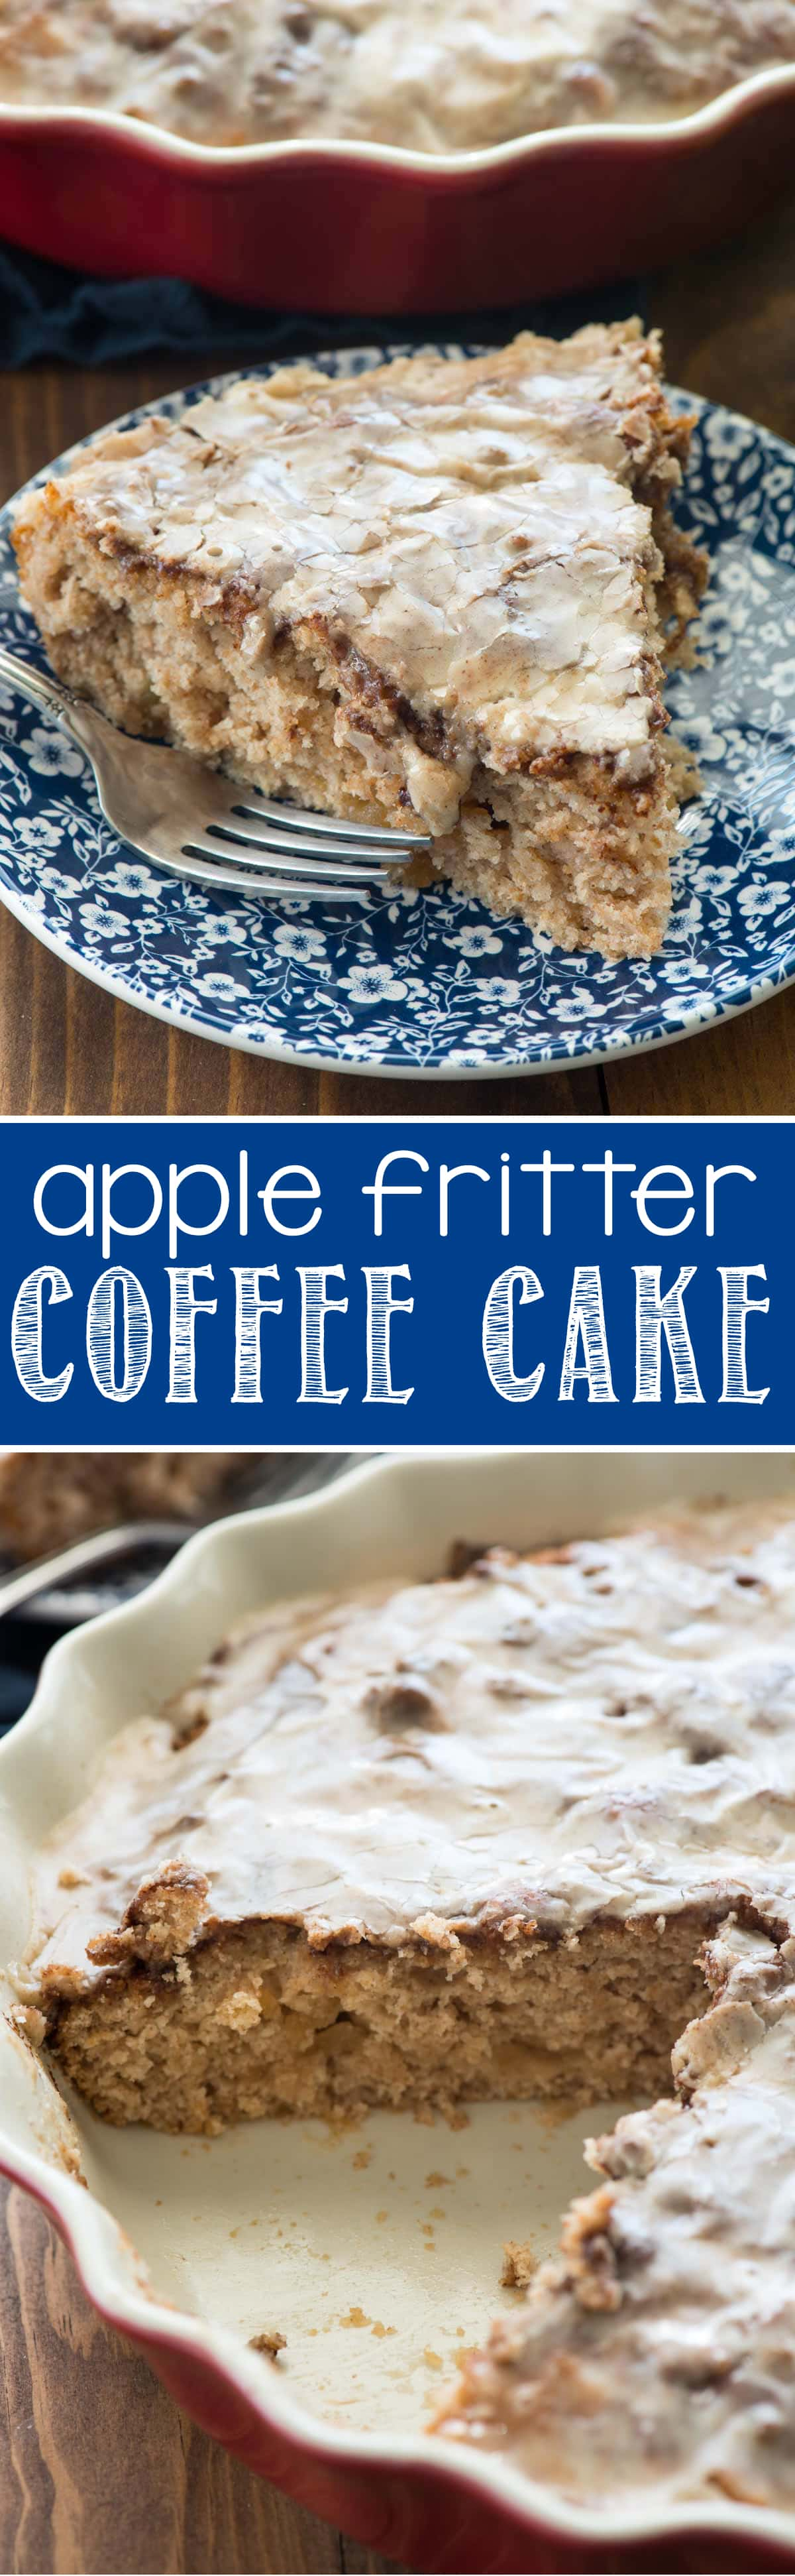 Apple Fritter Coffee Cake - this EASY coffee cake recipe tastes JUST like an apple fritter, complete with the glaze!